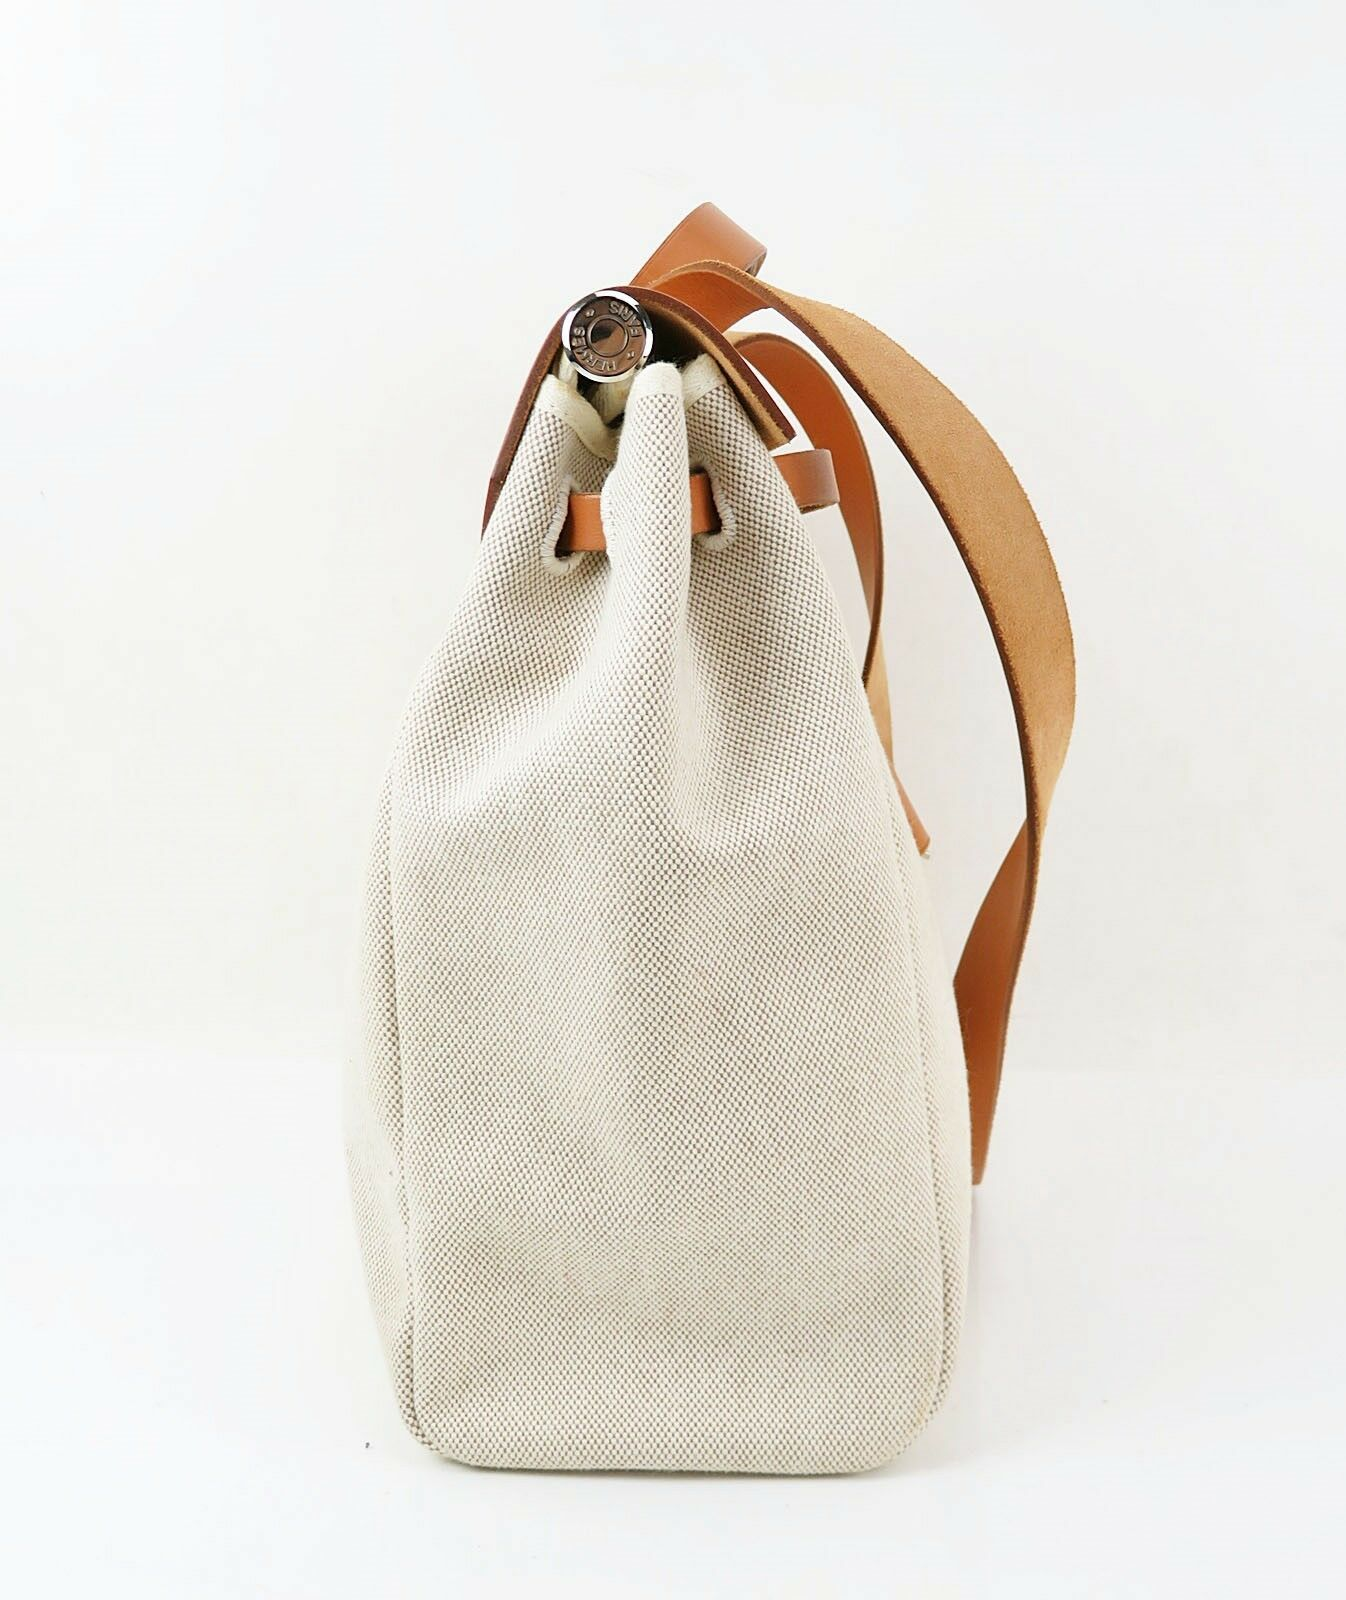 Auth HERMES Her Bag 2 in 1 Beige Canvas and Leather Hand Shoulder Bag #31320 image 5